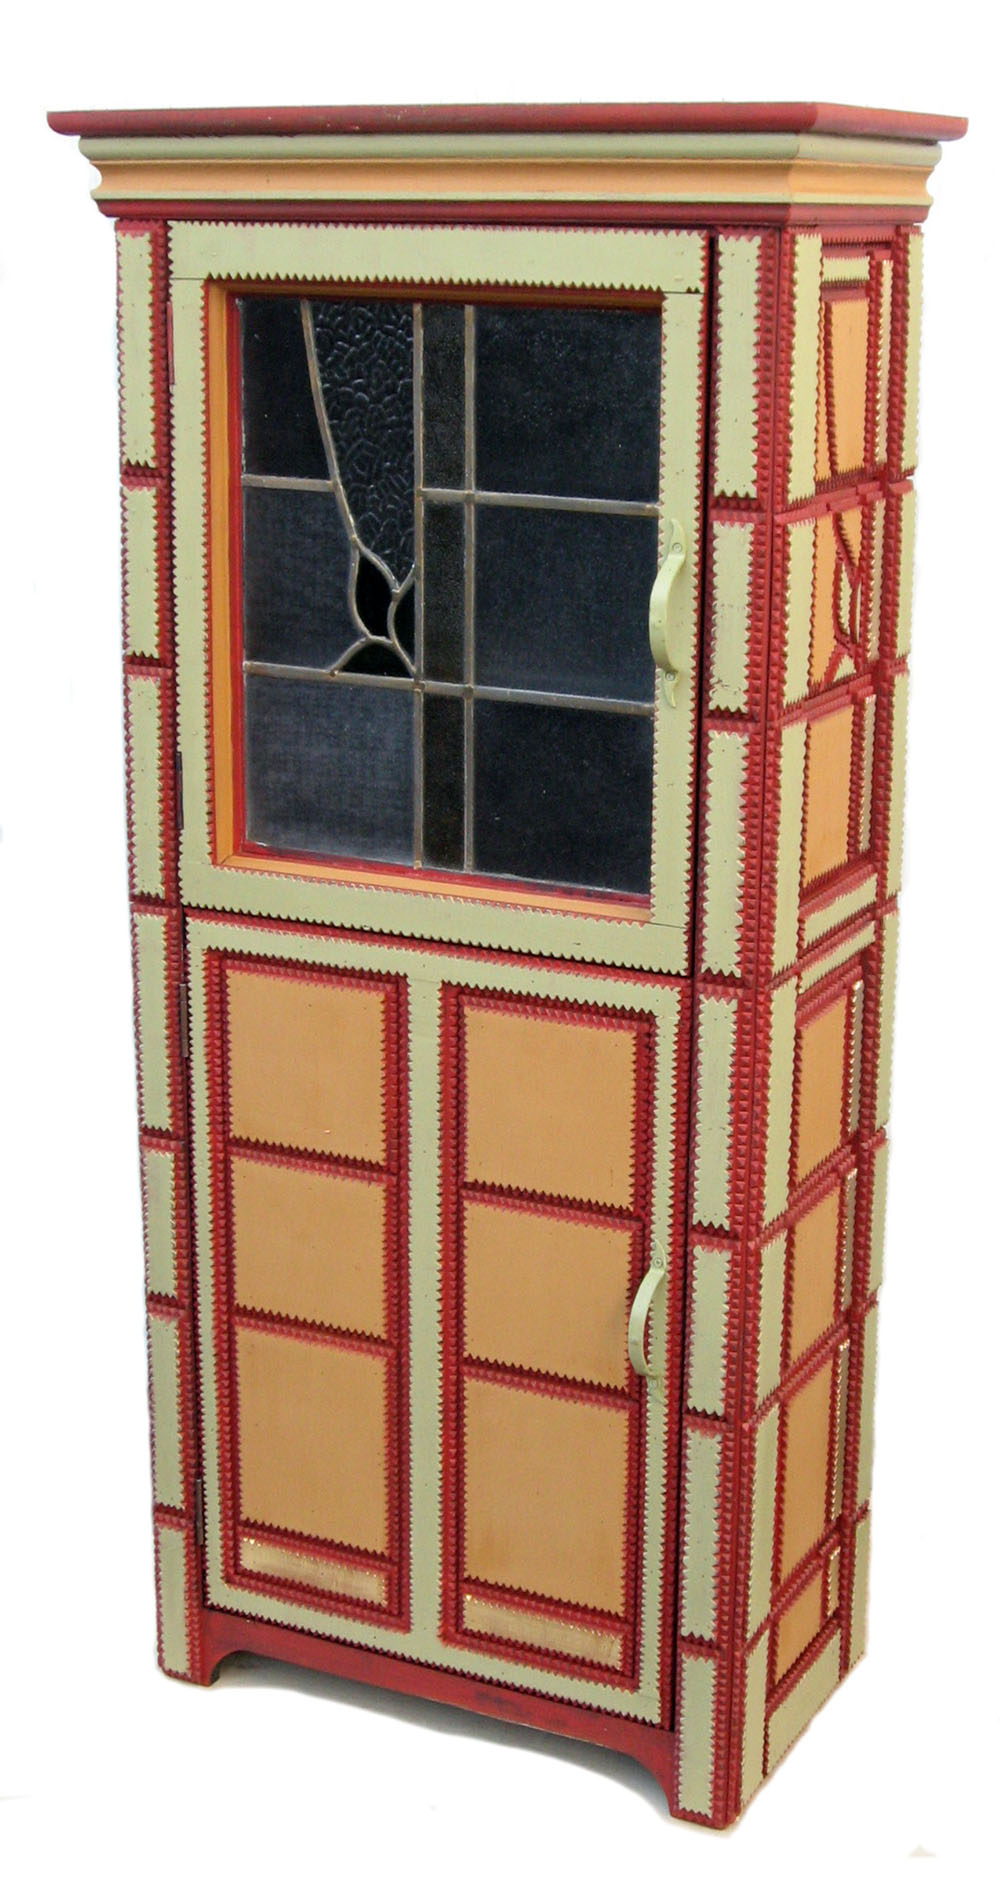 Tramp art cupboard with stained glass door.